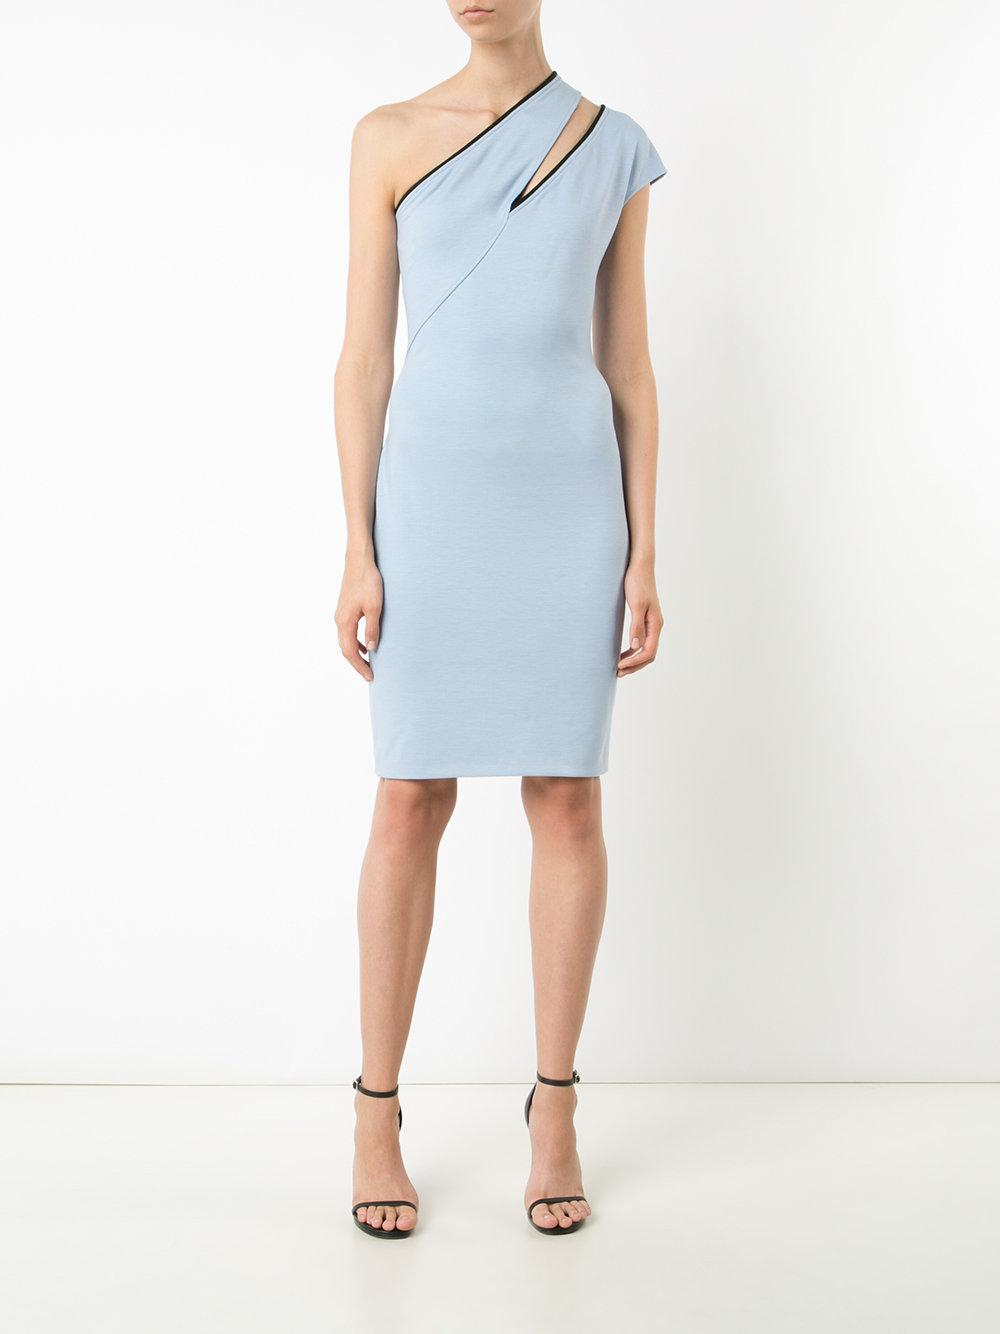 Outlet Best Place cut out one-shoulder dress - Blue MUGLER High Quality Cheap Online Clearance Visa Payment Cheap 100% Authentic Cost Online 6dV9MQqpF1